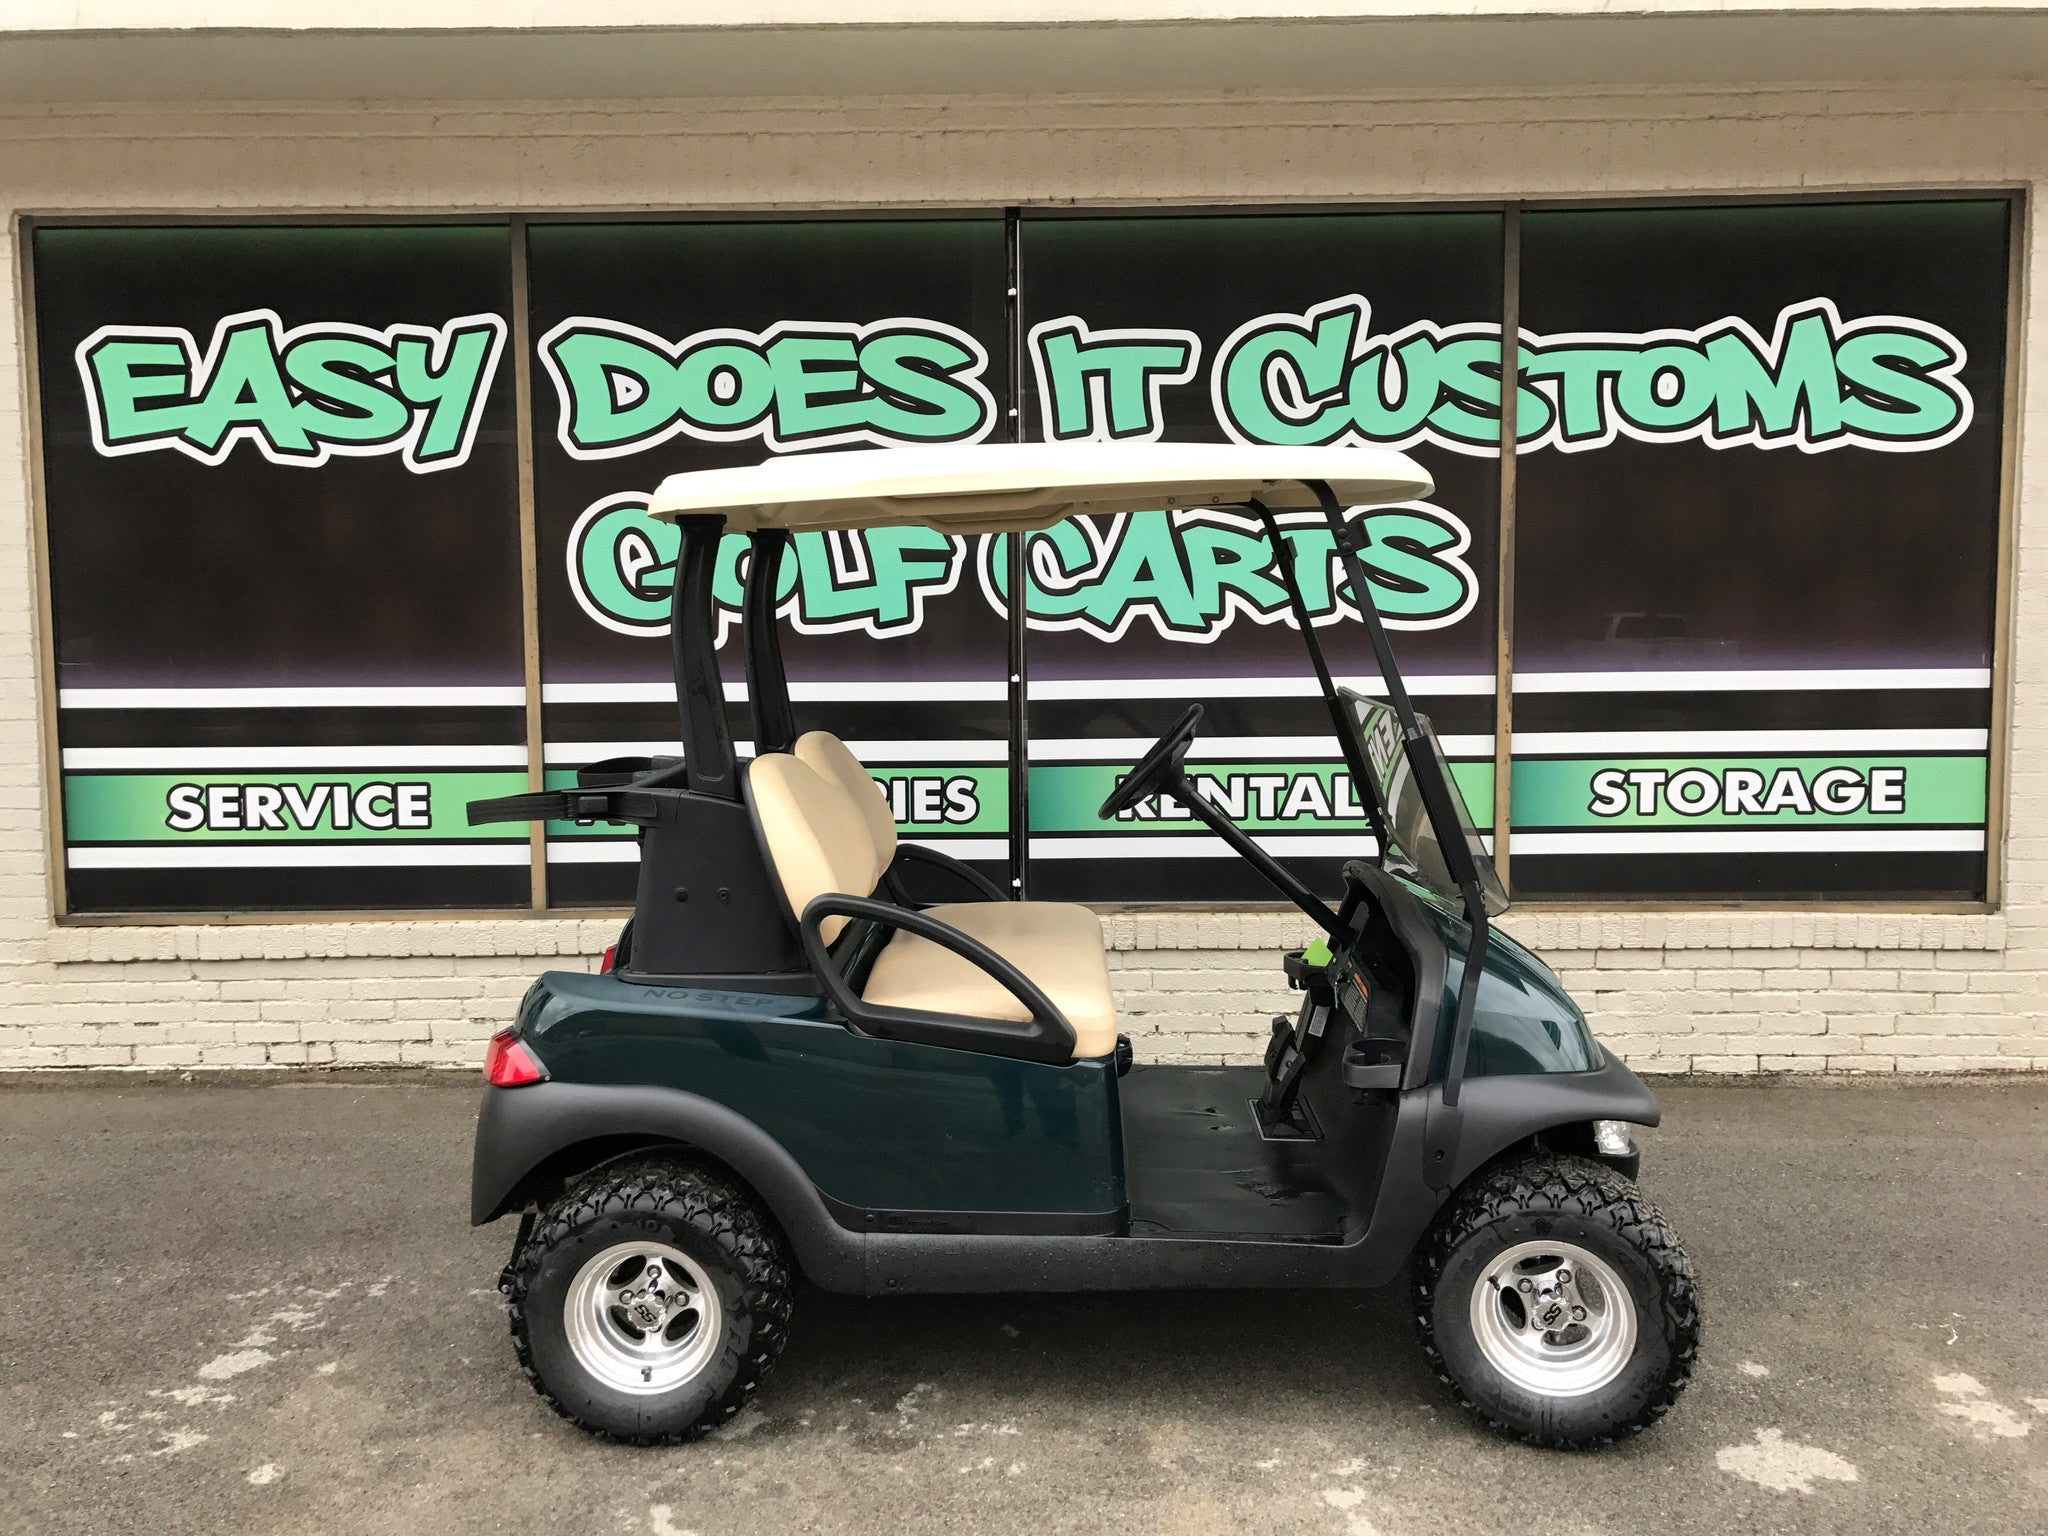 2012 Lifted Electric Club Car Precedent Golf Cart Sold Easy Does